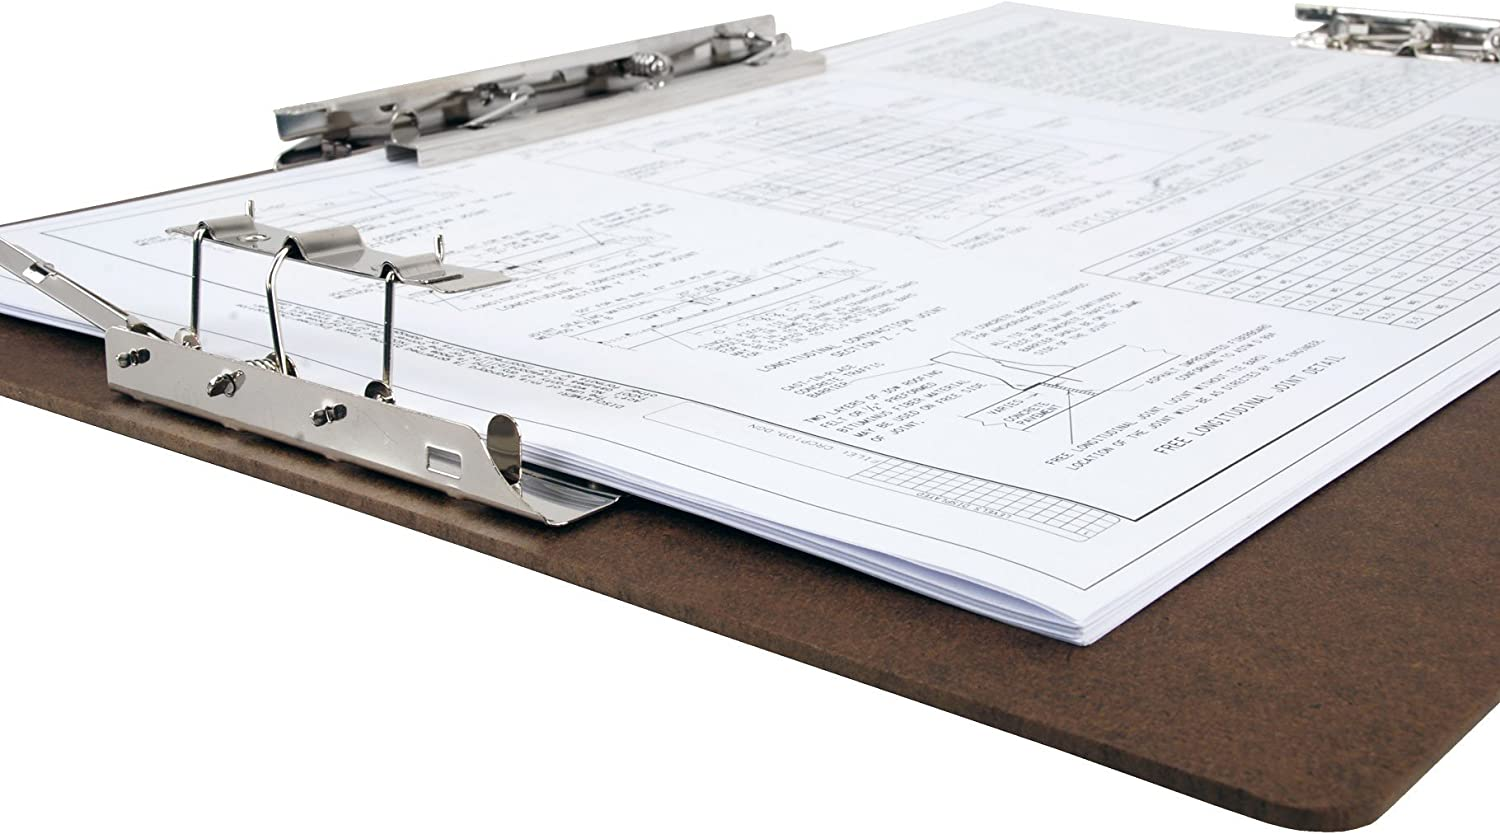 Hardboard Clipboard 8-Inch Hinge and Mousetrap Clip Secure Spreadsheets,Drawings